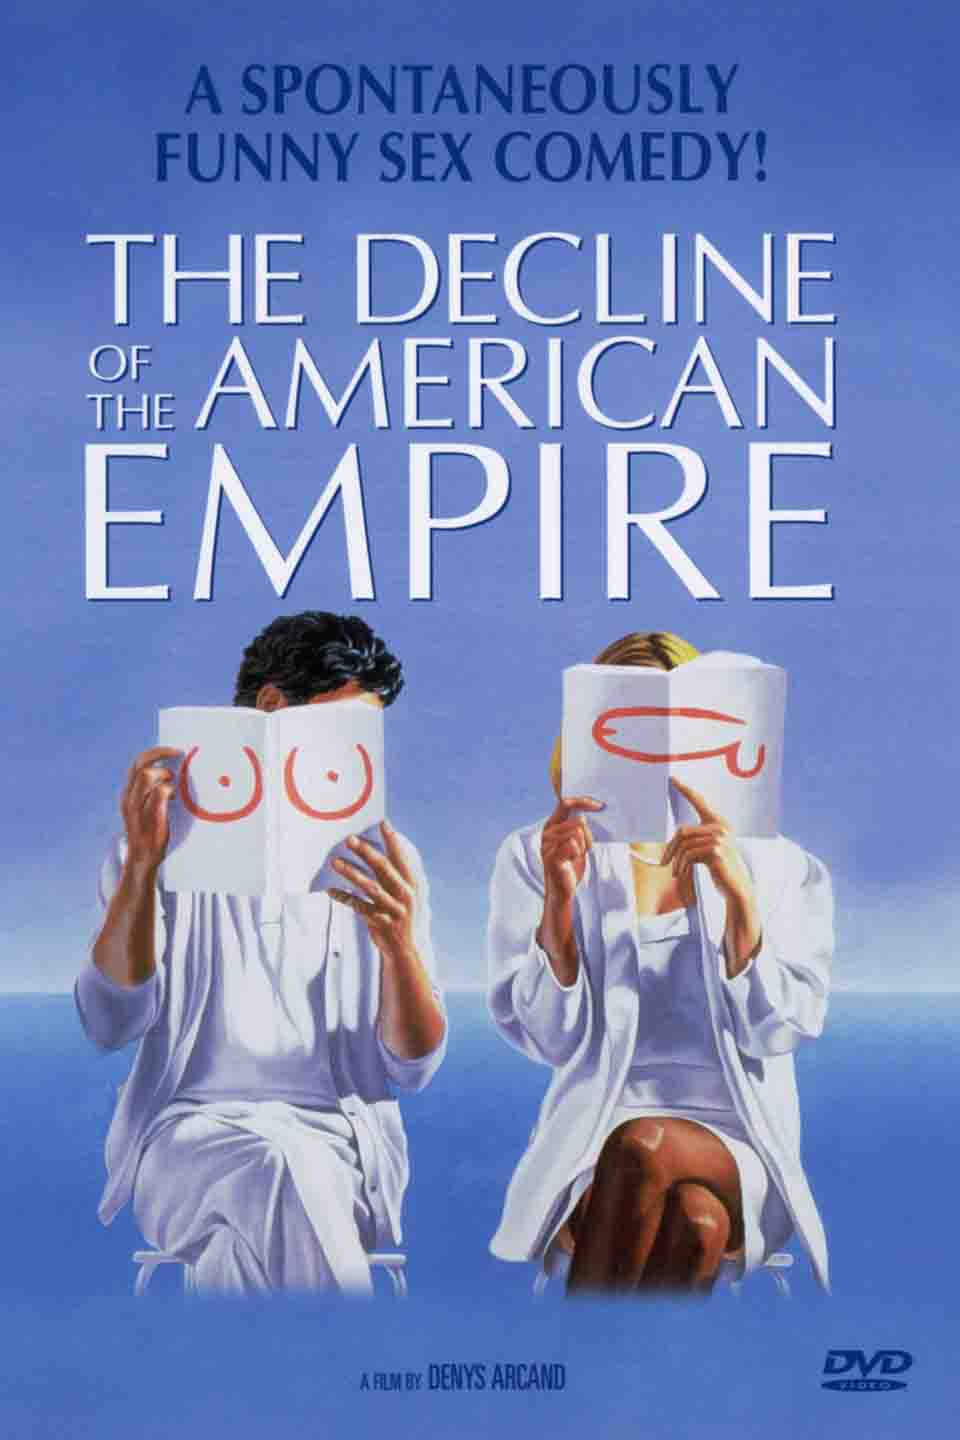 The Decline of the American Empire wwwgstaticcomtvthumbdvdboxart8395p8395dv8